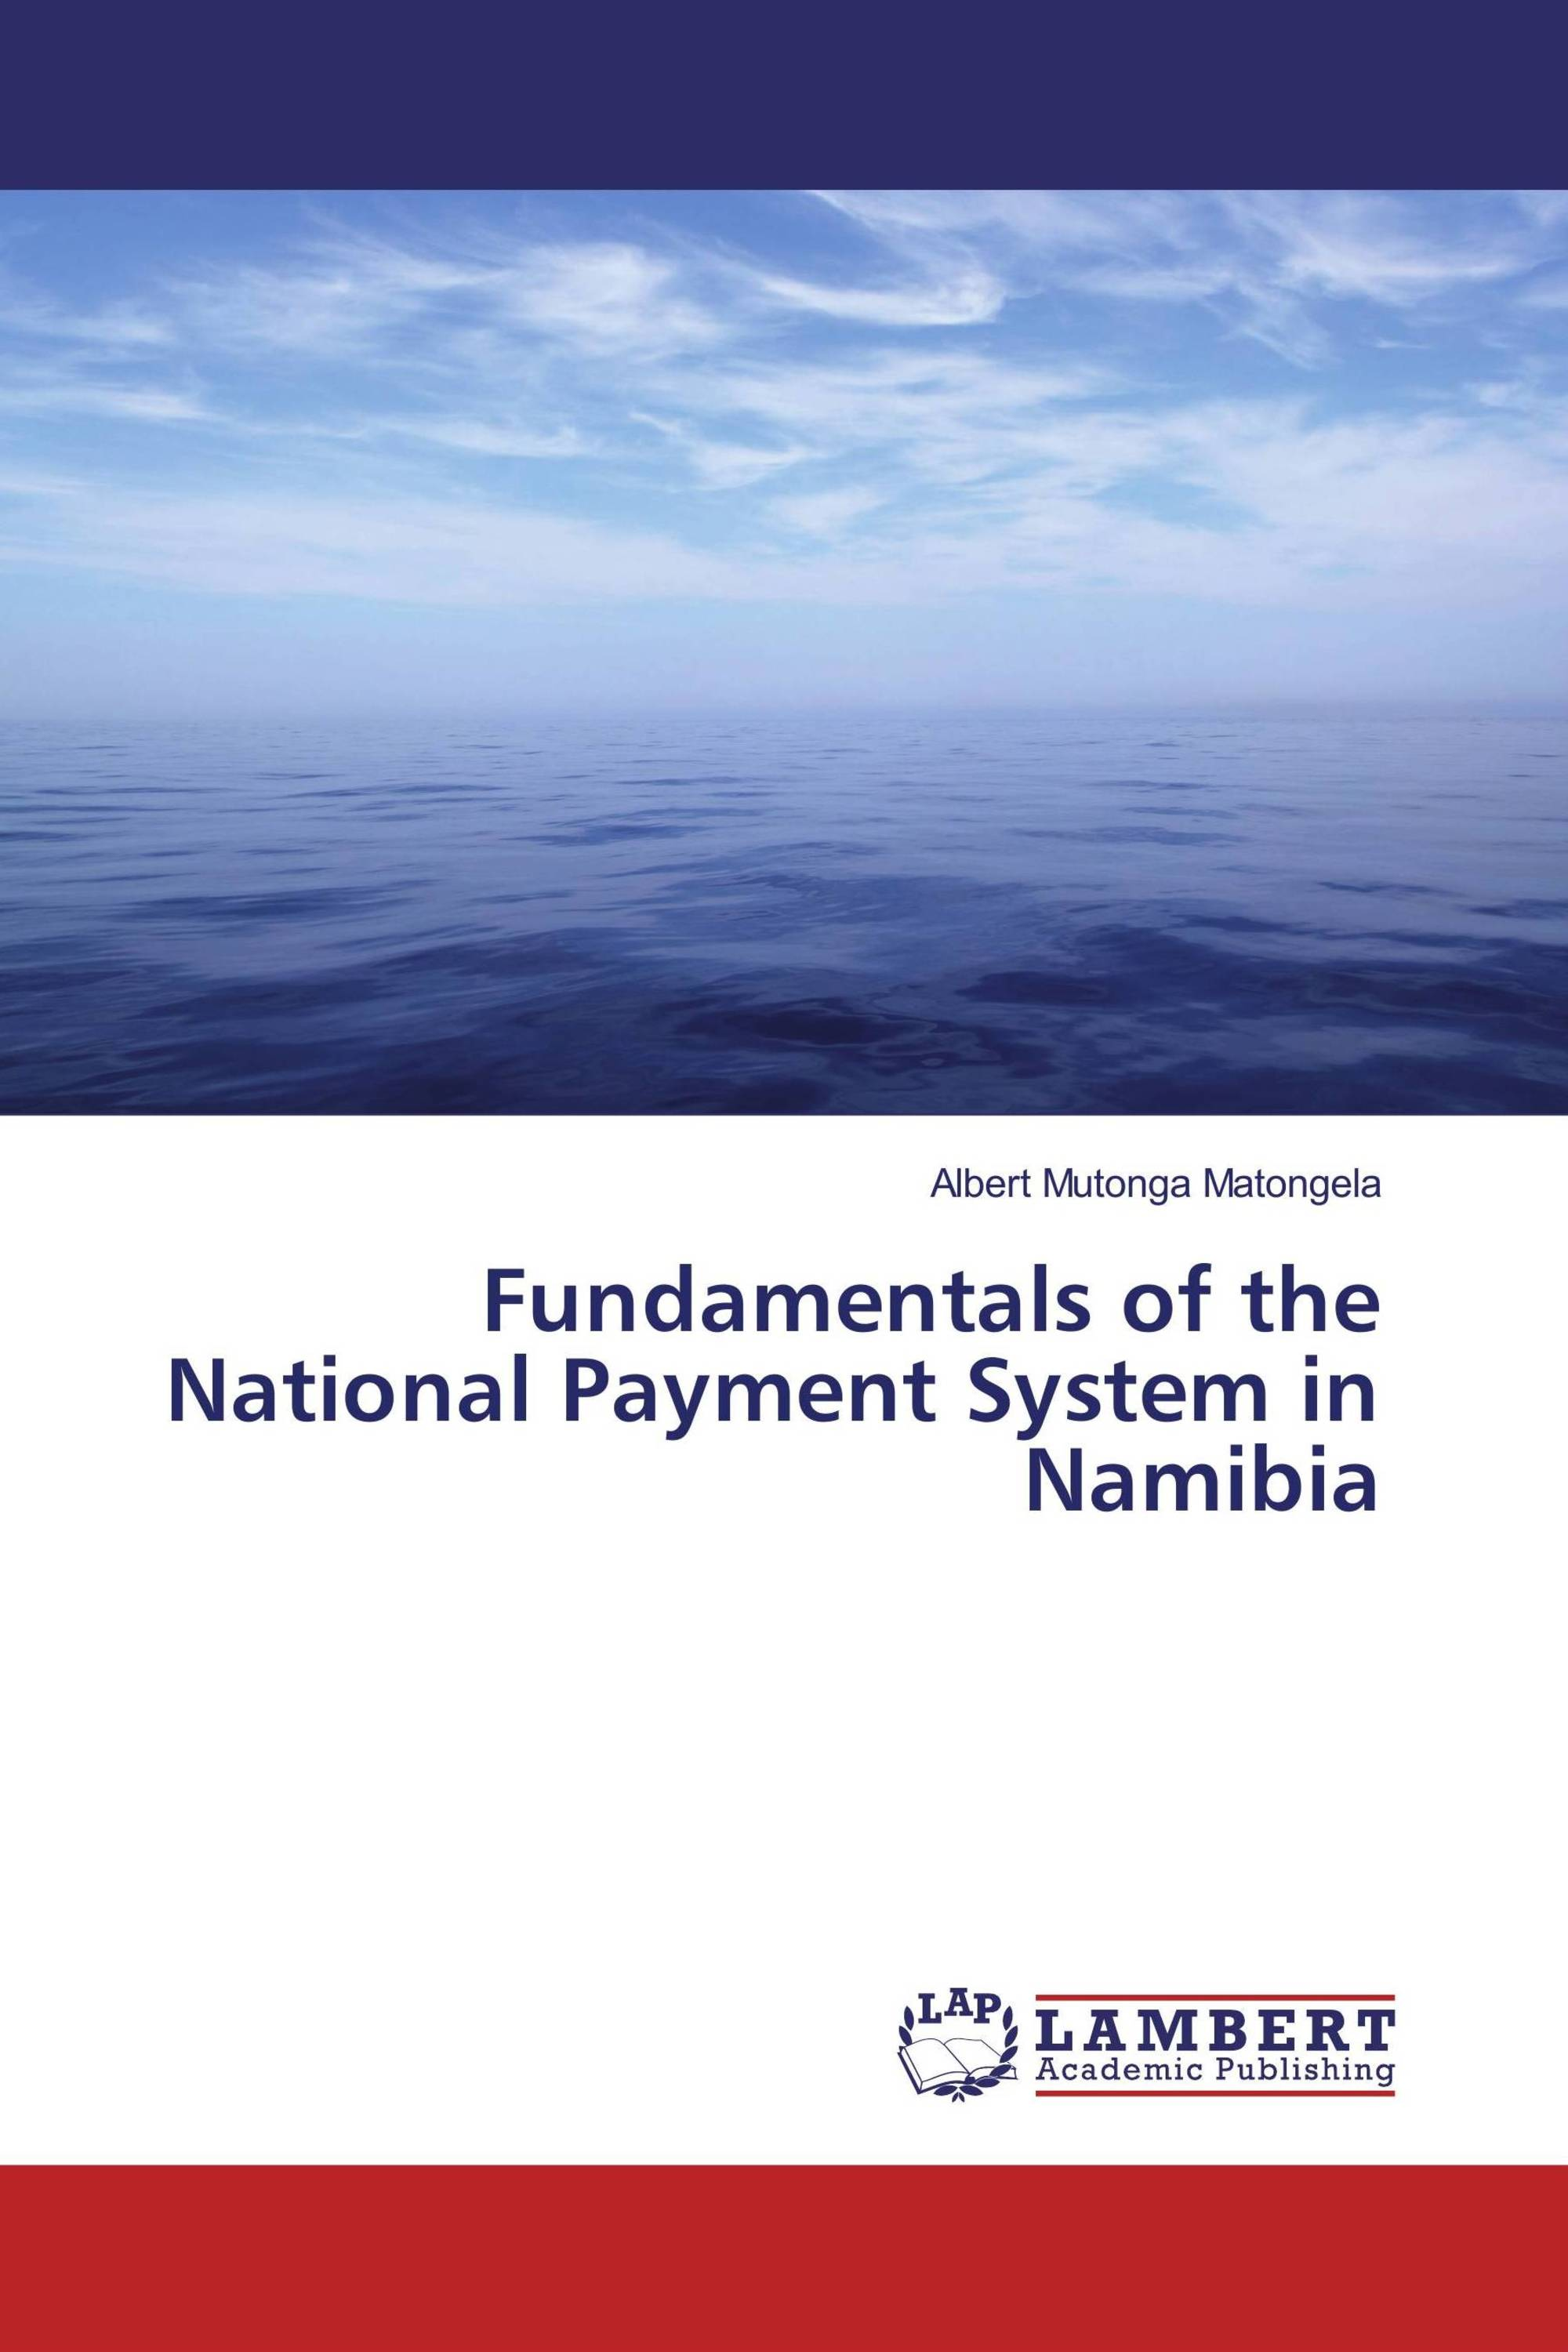 Fundamentals of the National Payment System in Namibia